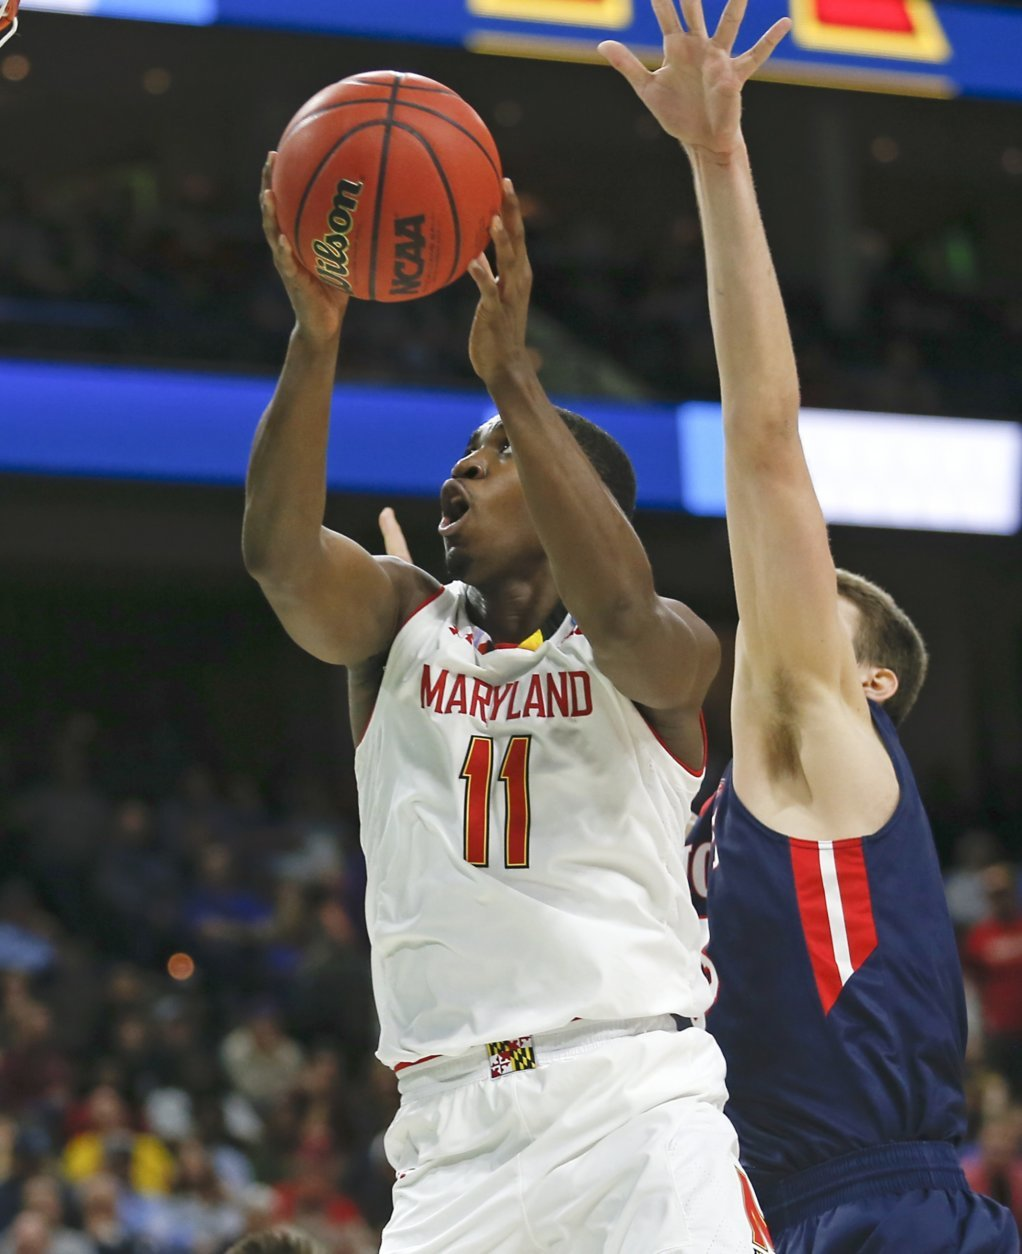 Maryland 's Darryl Morsell (11) goes up to shoot past Belmont 's Nick Muszynski during the first half of a first round men's college basketball game in the NCAA Tournament in Jacksonville, Fla., Thursday, March 21, 2019. (AP Photo/Stephen B. Morton)